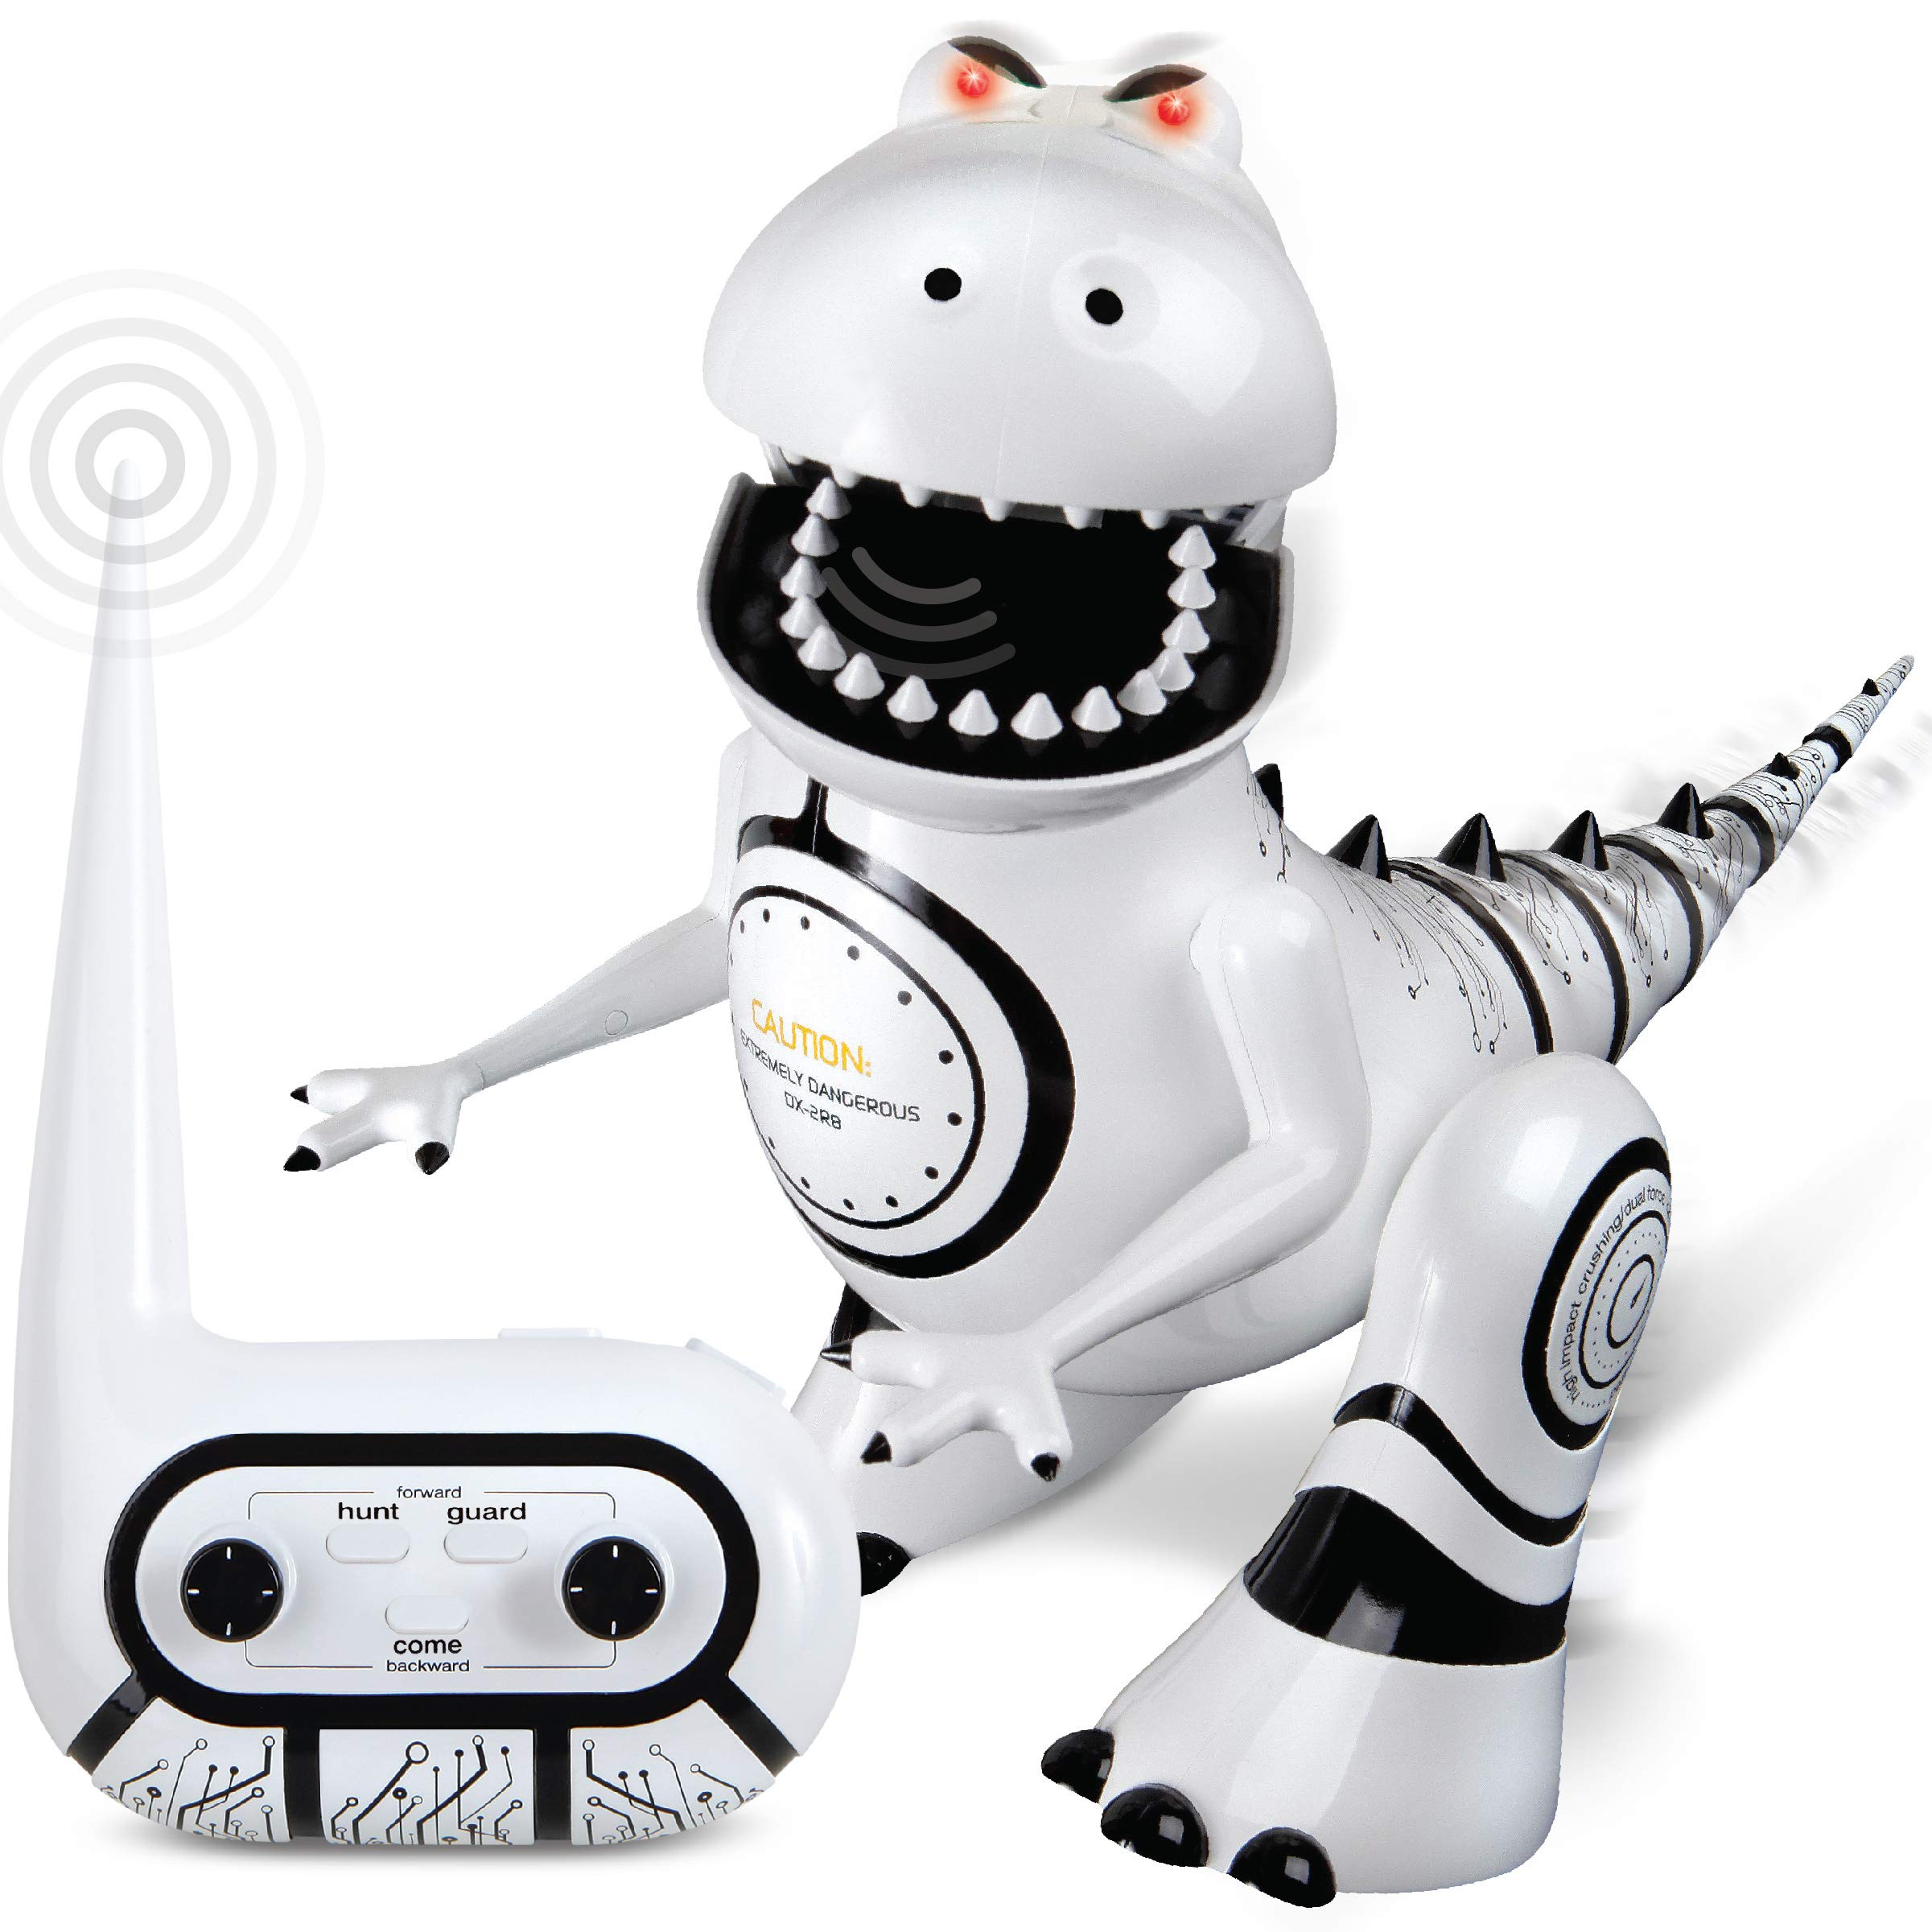 SHARPER IMAGE Interactive RC Robotosaur Dinosaur, Built-in Mood Sensors and Color-Changing LED Eyes, Motion Detection, Growls, Snores, Battery Operated- White/Black by Sharper Image (Image #1)